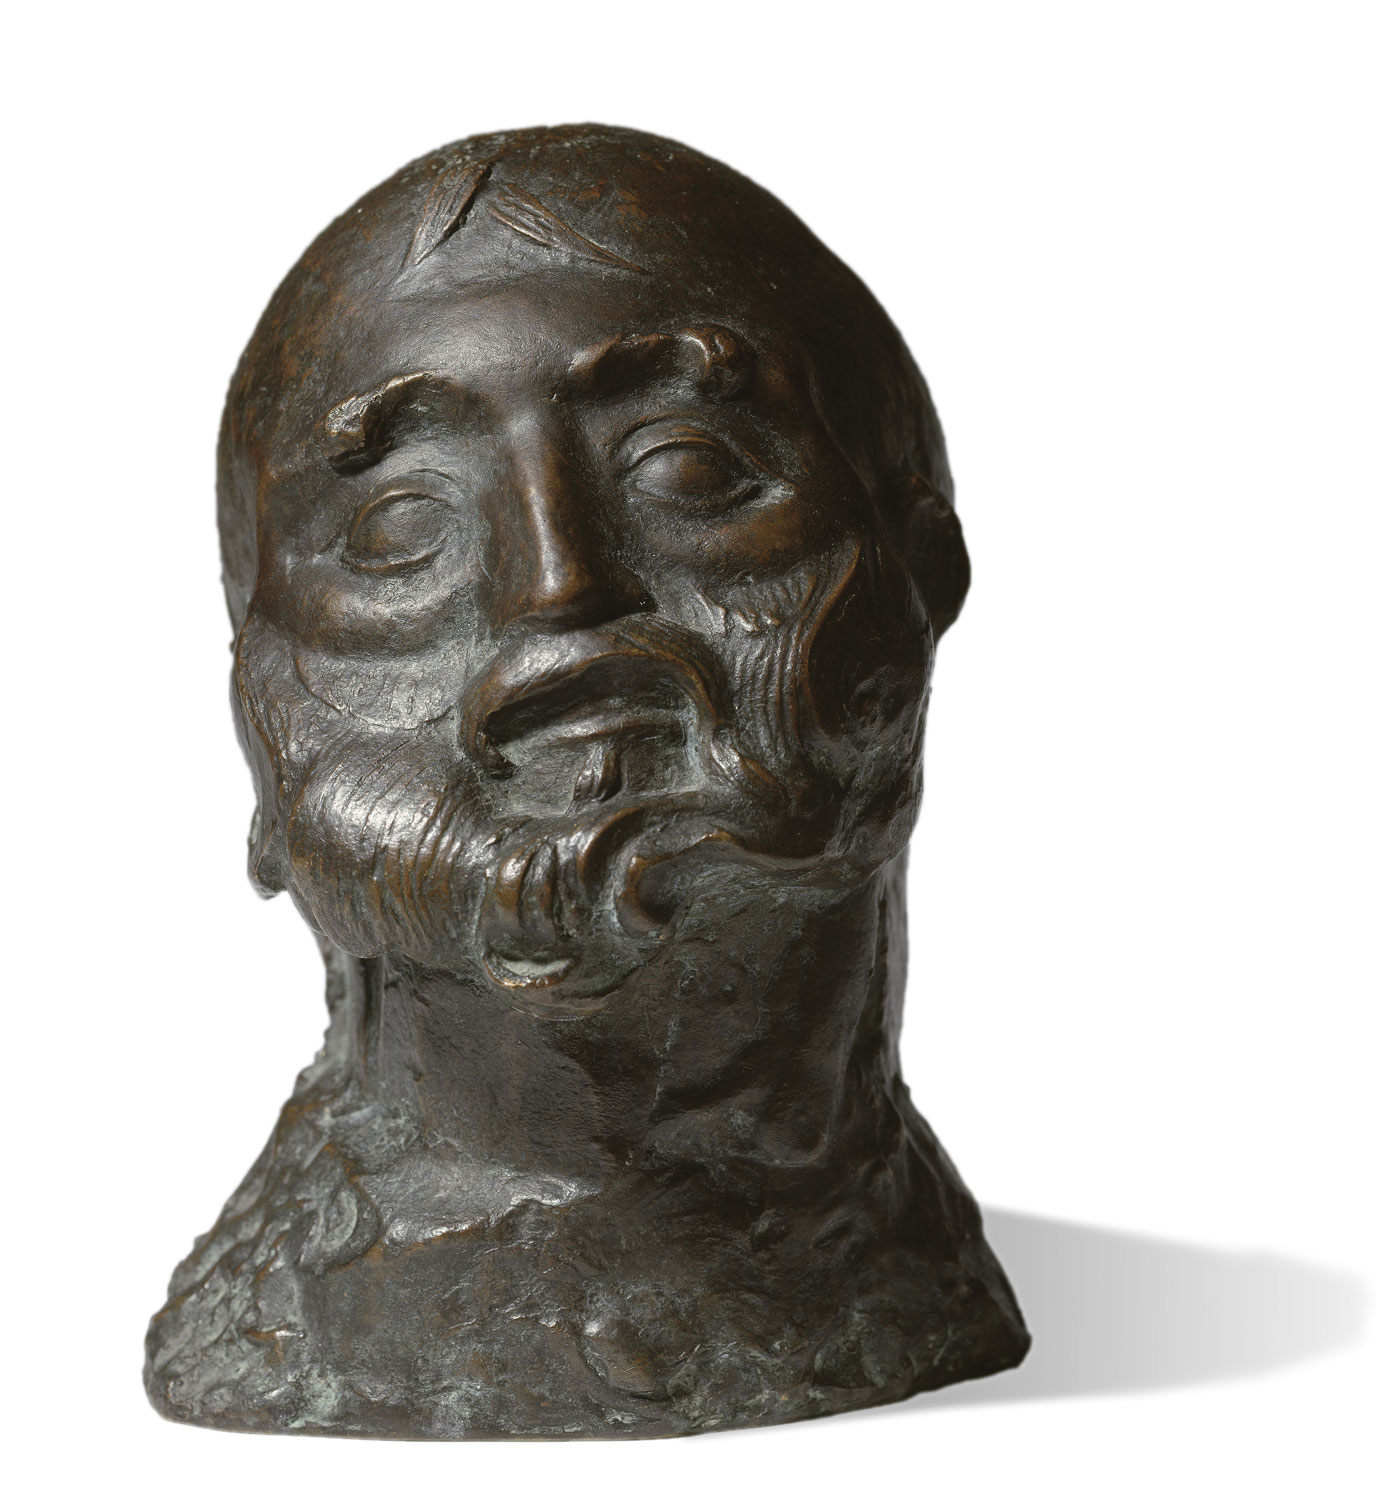 A man's head, Manolo Hugué